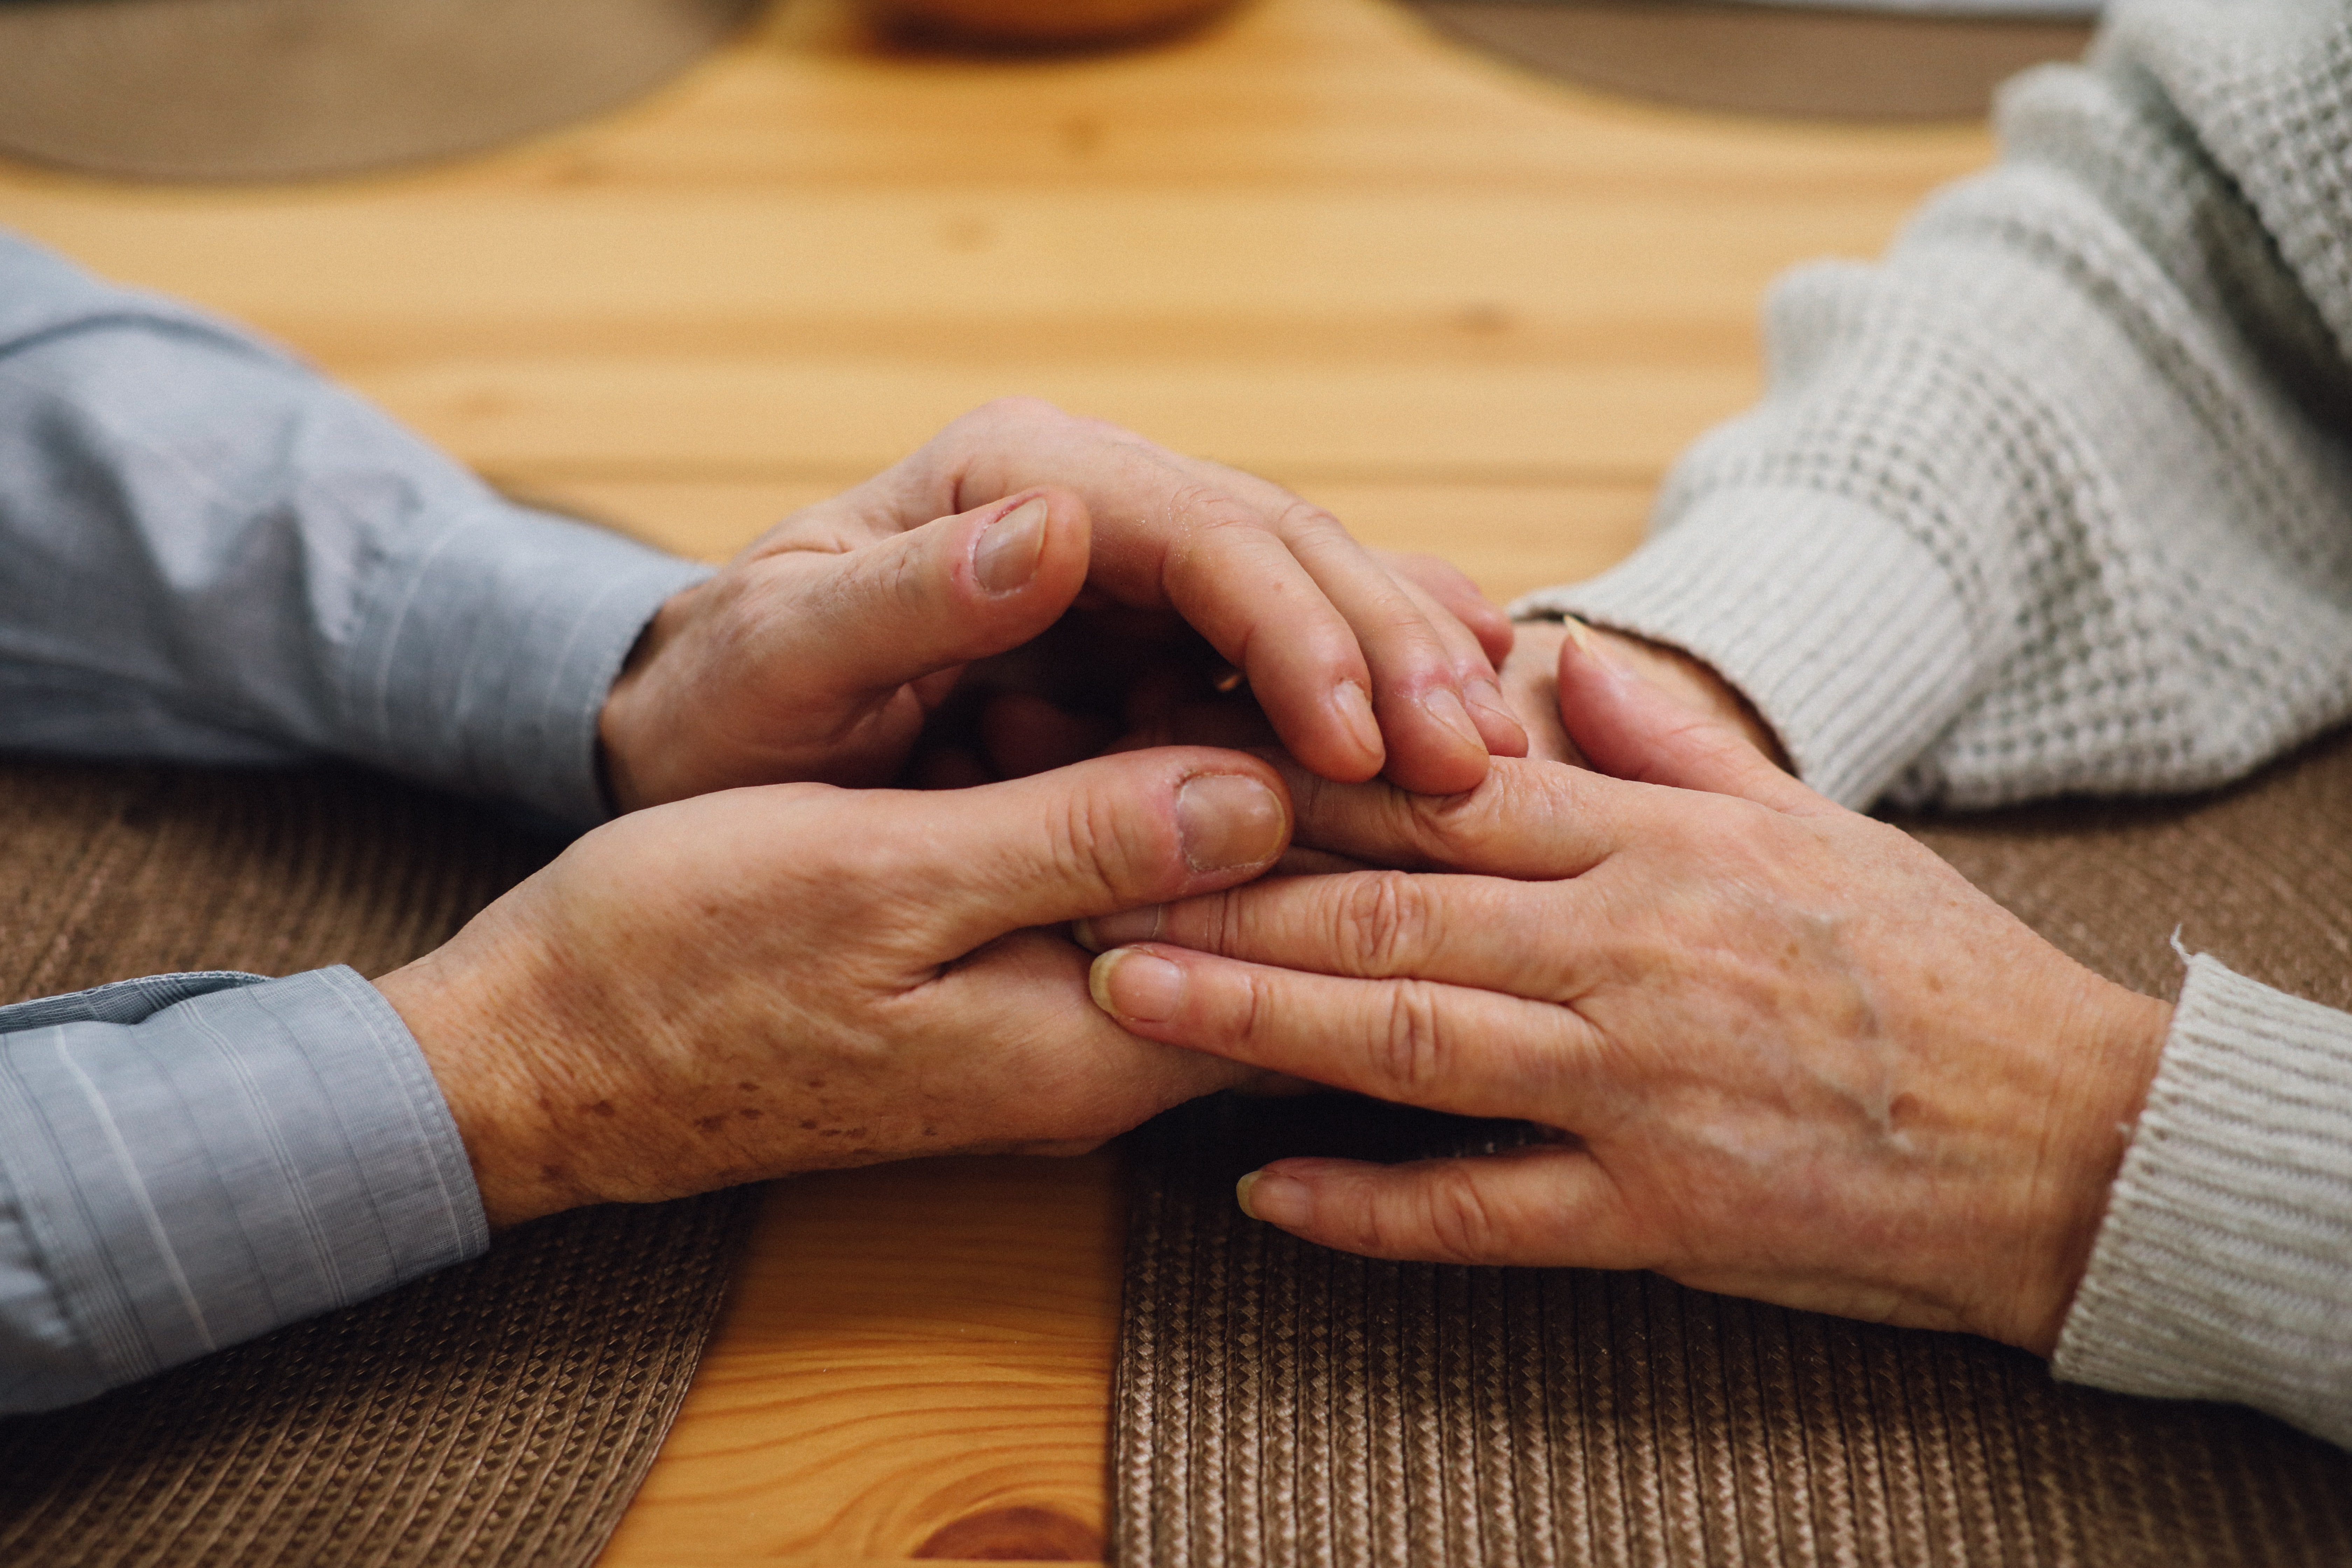 Elderly couple holding hands on table with placemats